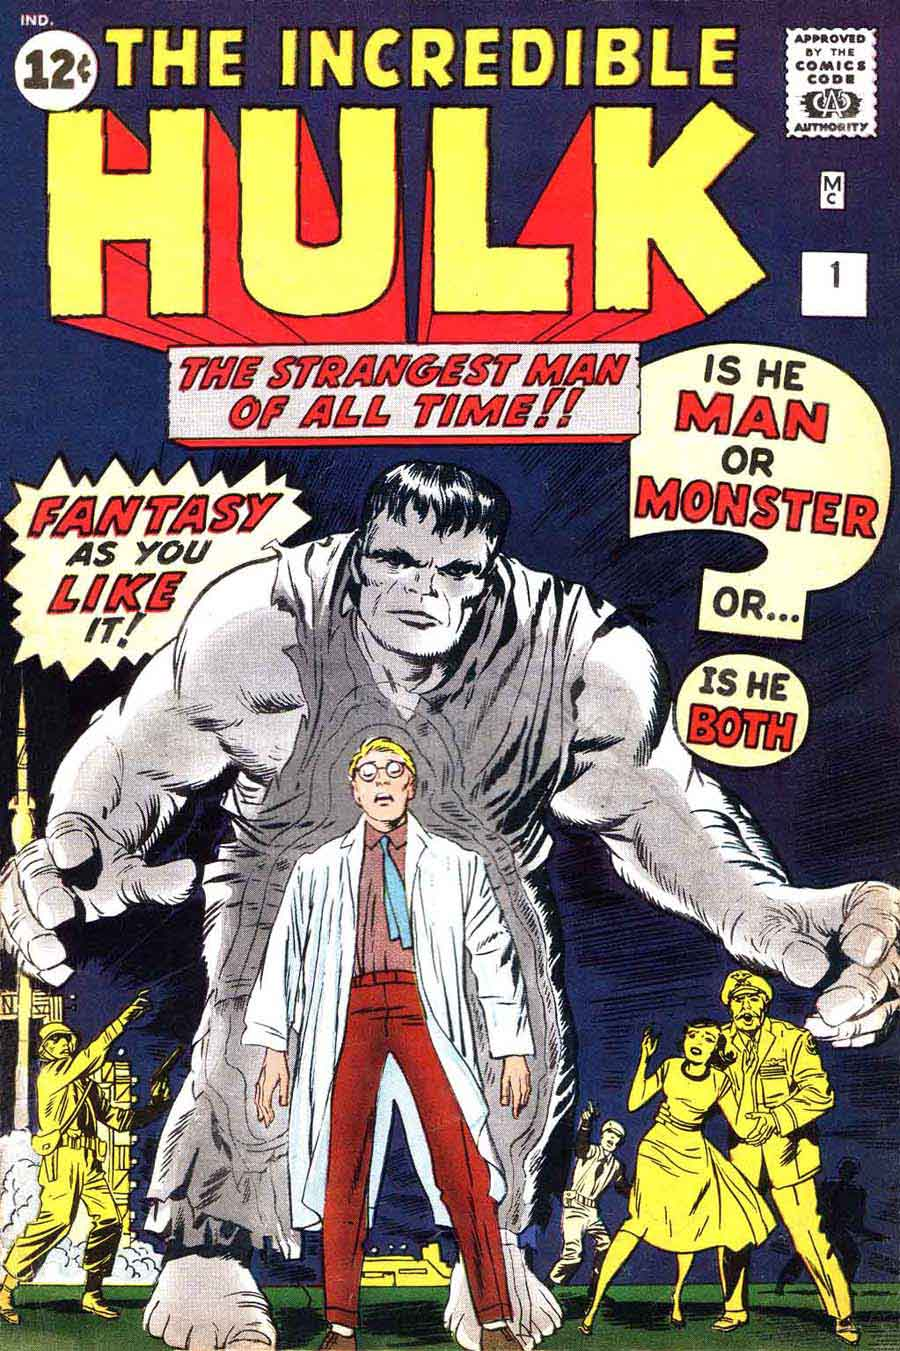 Incredible Hulk #1 - Jack Kirby art & cover - Pencil Ink